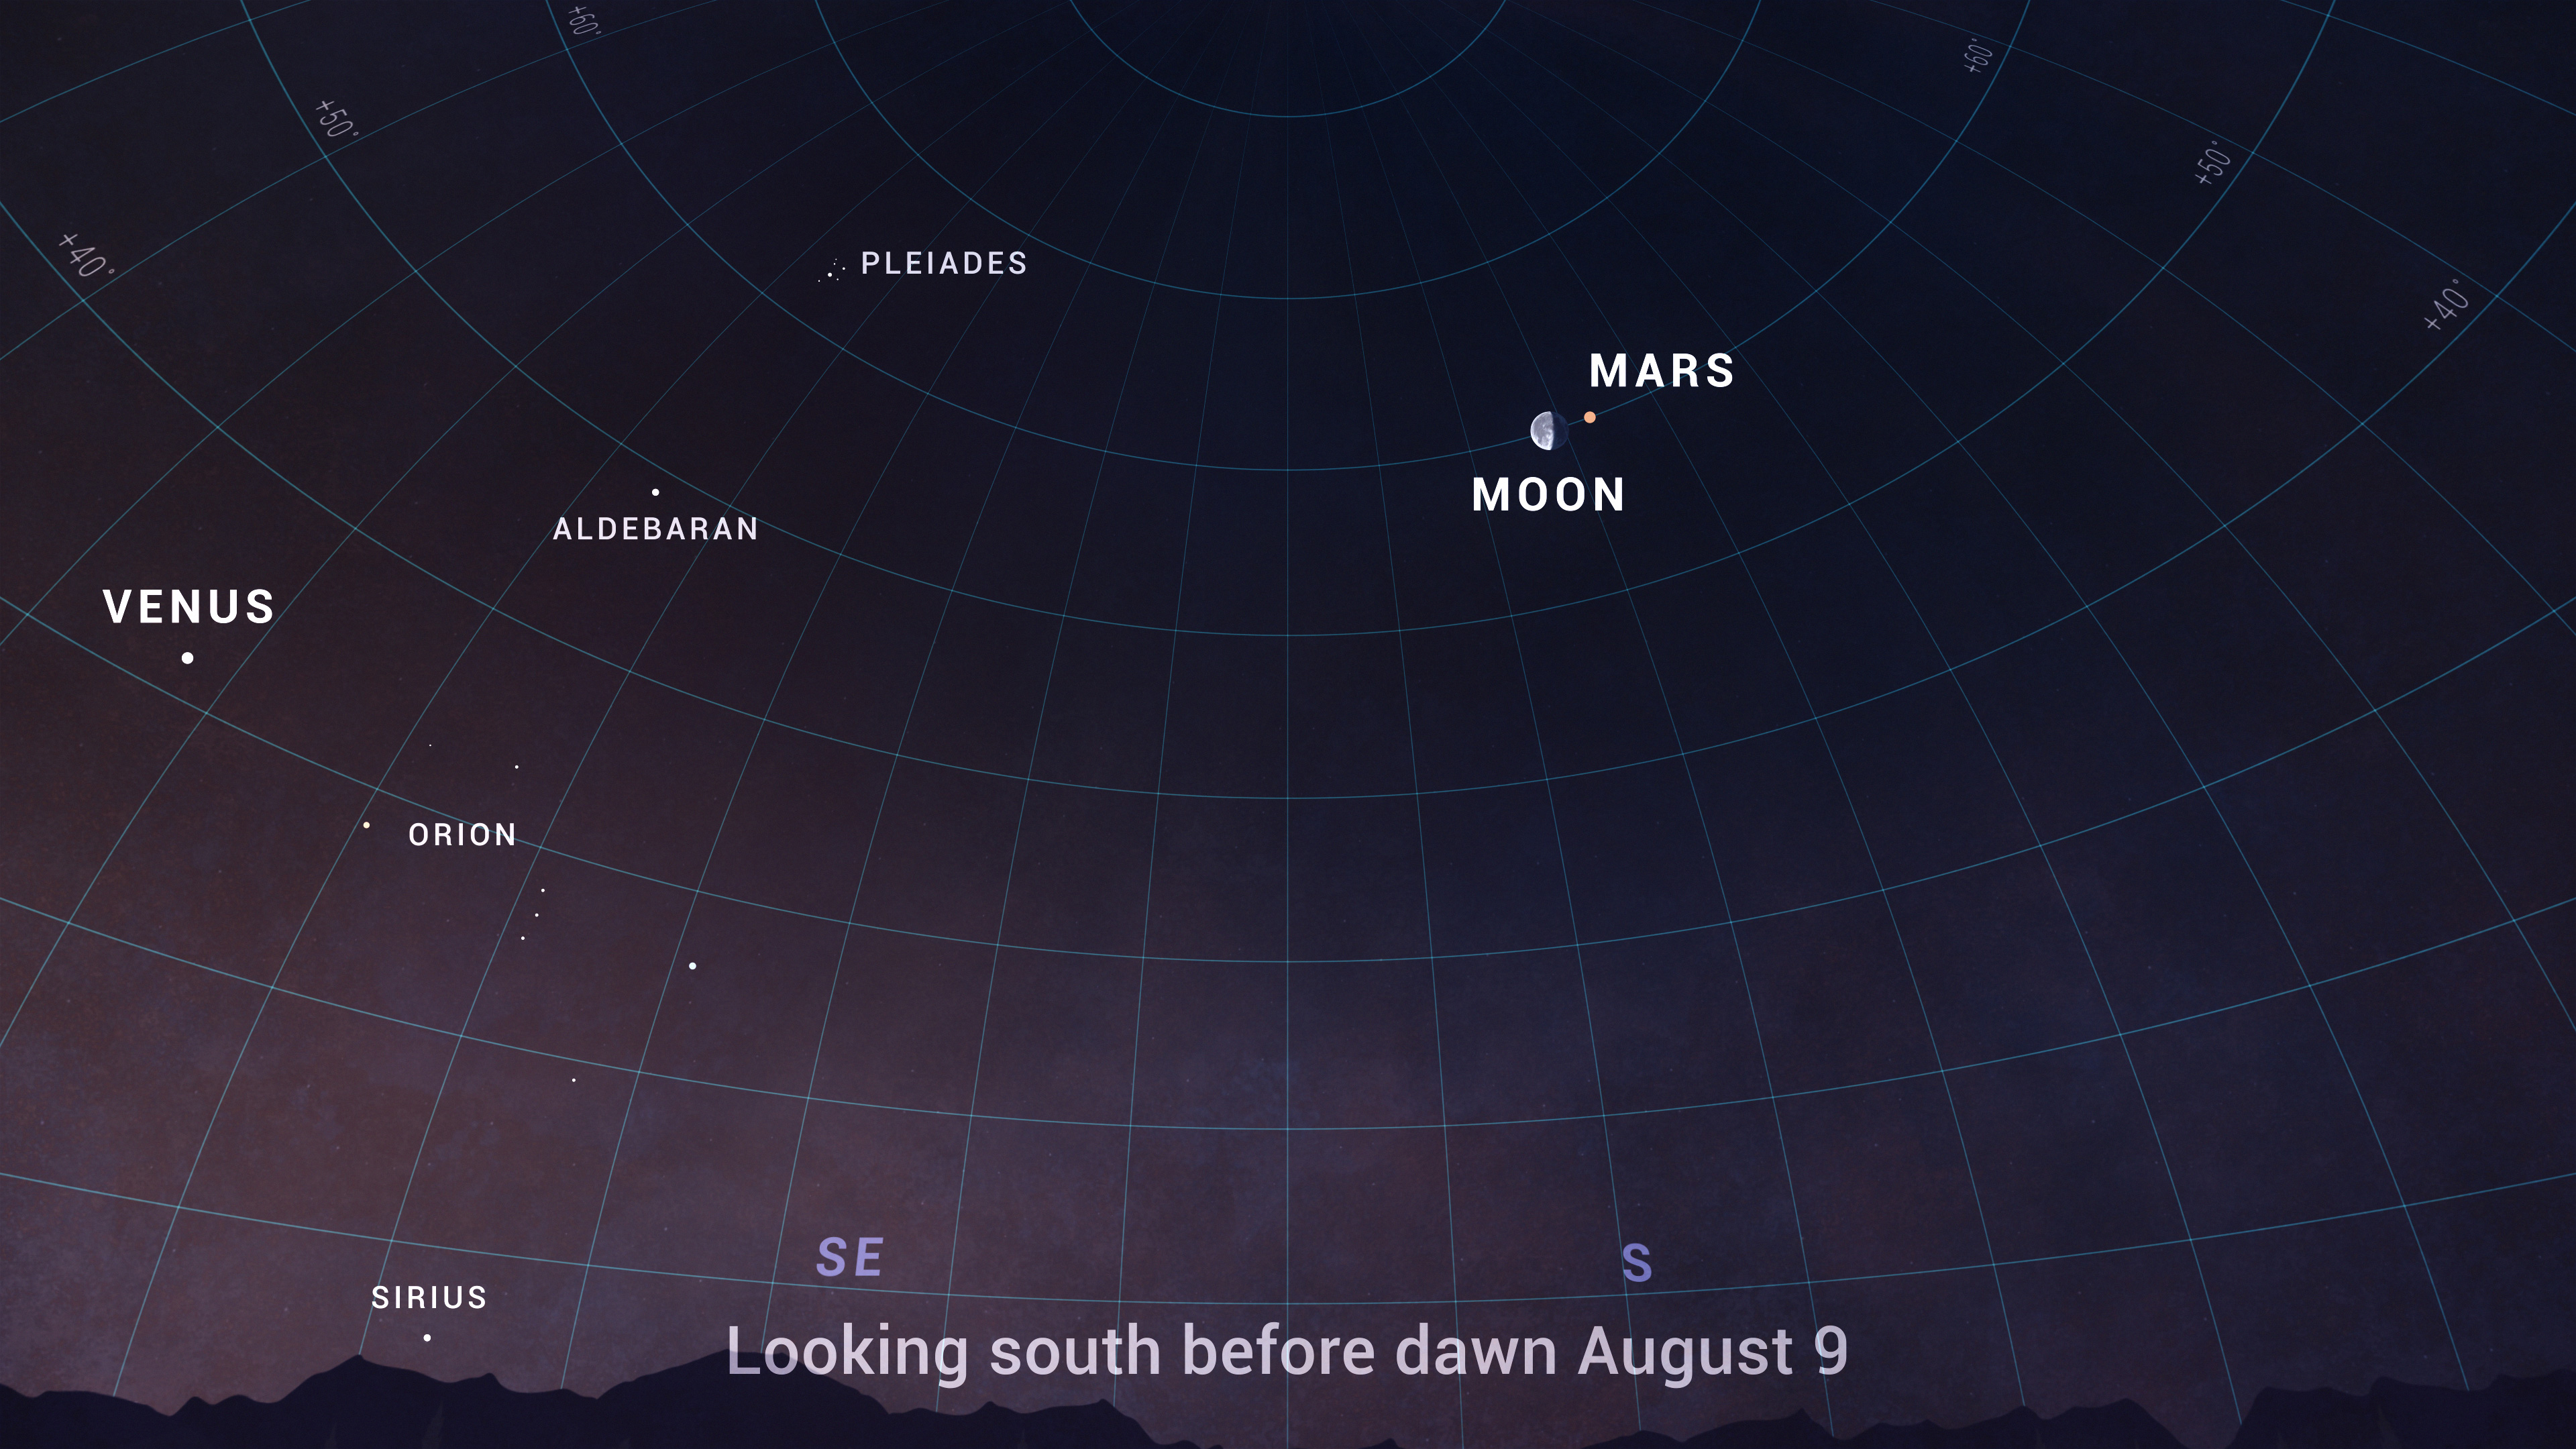 Sky chart showing the Moon near Mars in the predawn sky on August 9.